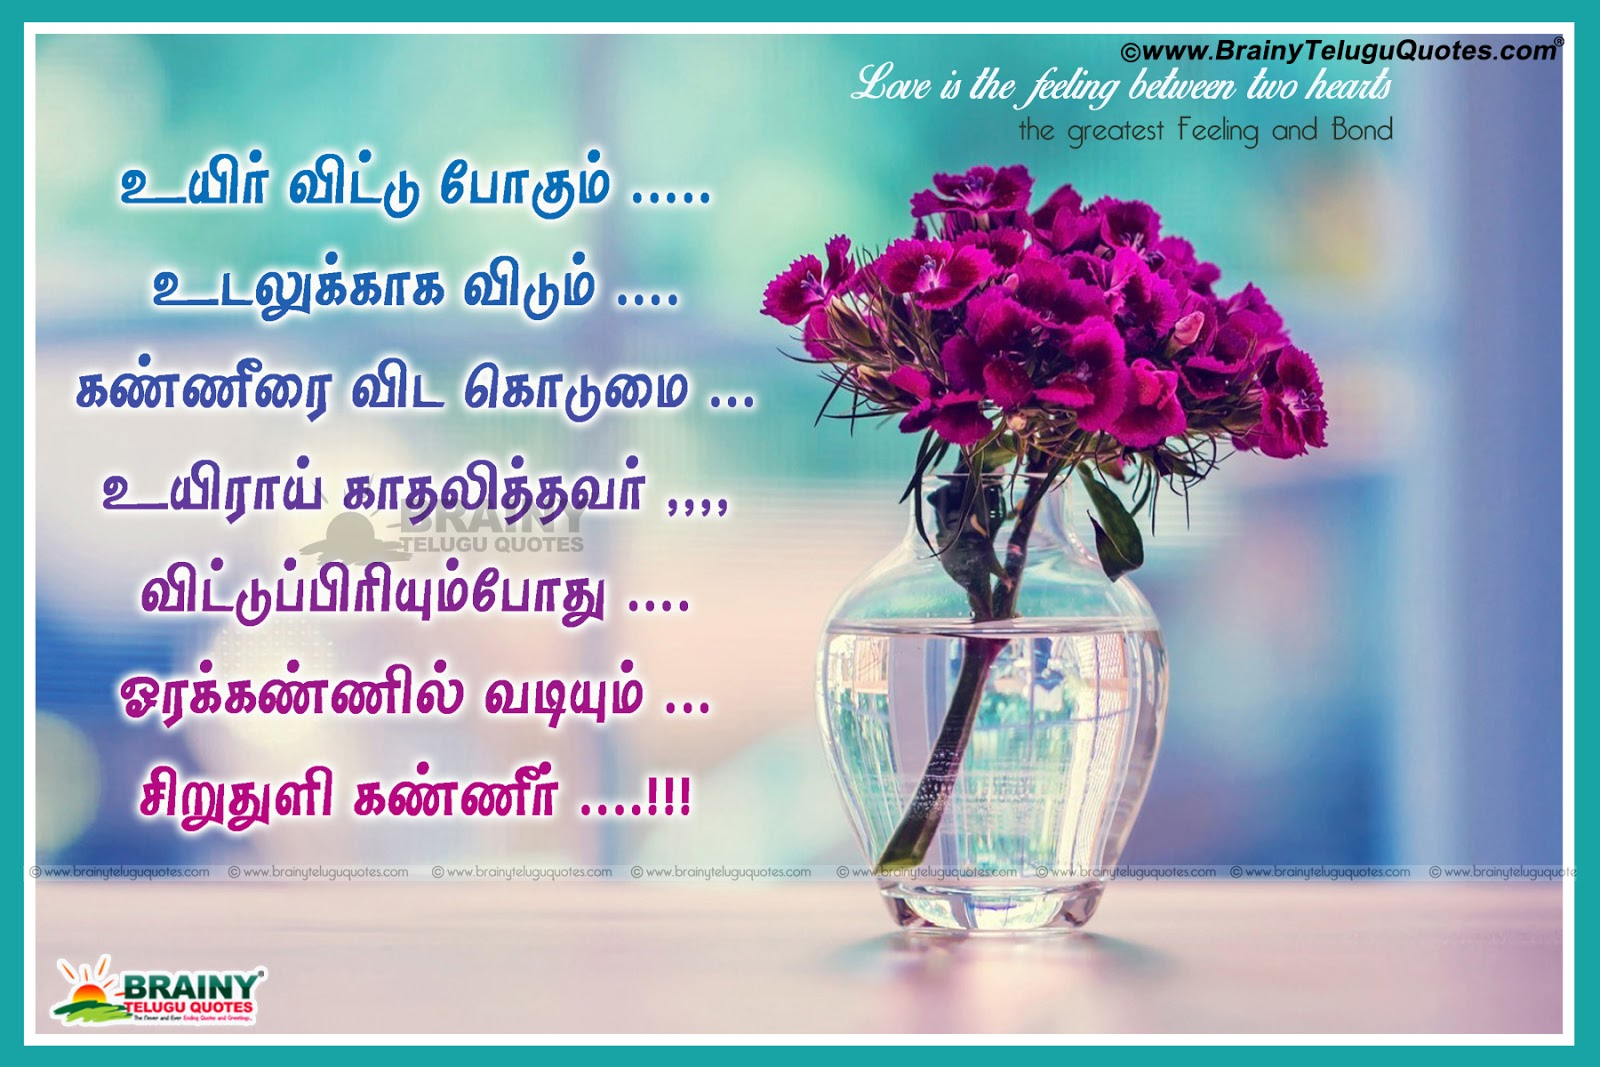 Tamil latest new kadhal kavithai love quotes in tamil here is tamil latest love quotations wallpapers best tamil love poems new love poems altavistaventures Image collections